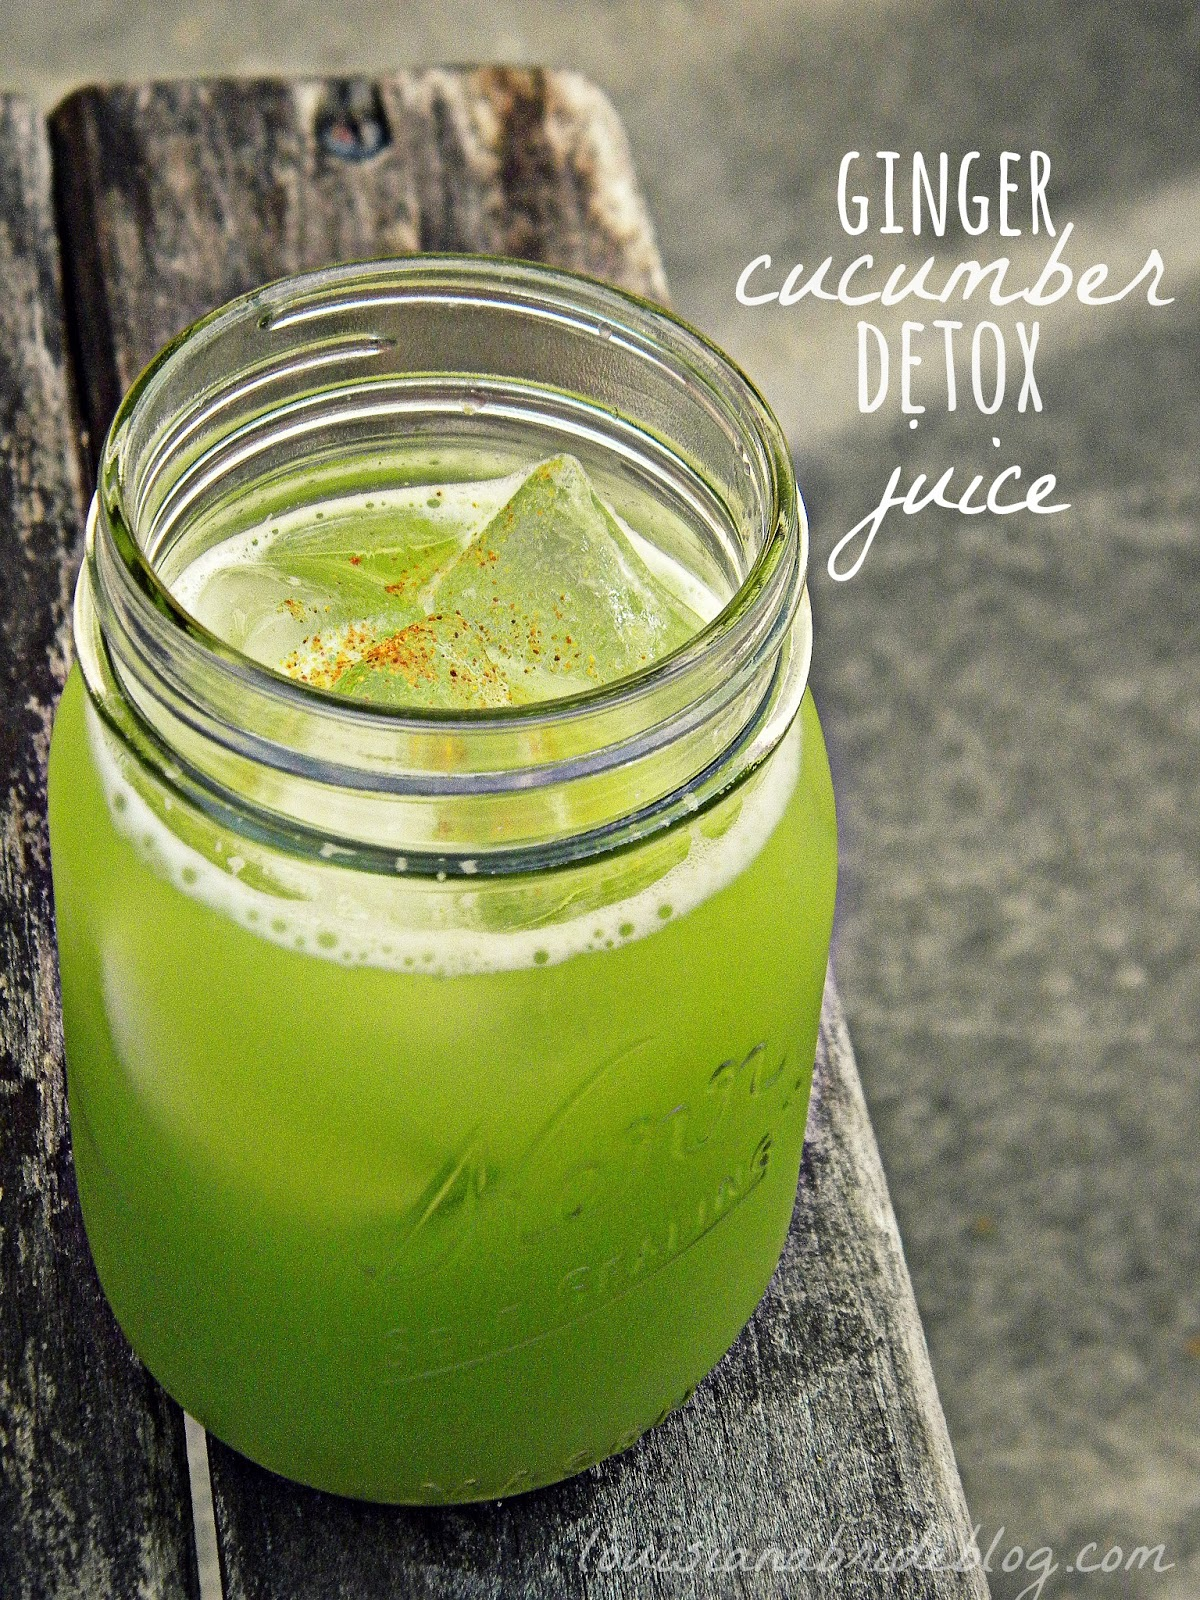 Watch How to Make Cucumber Juice video